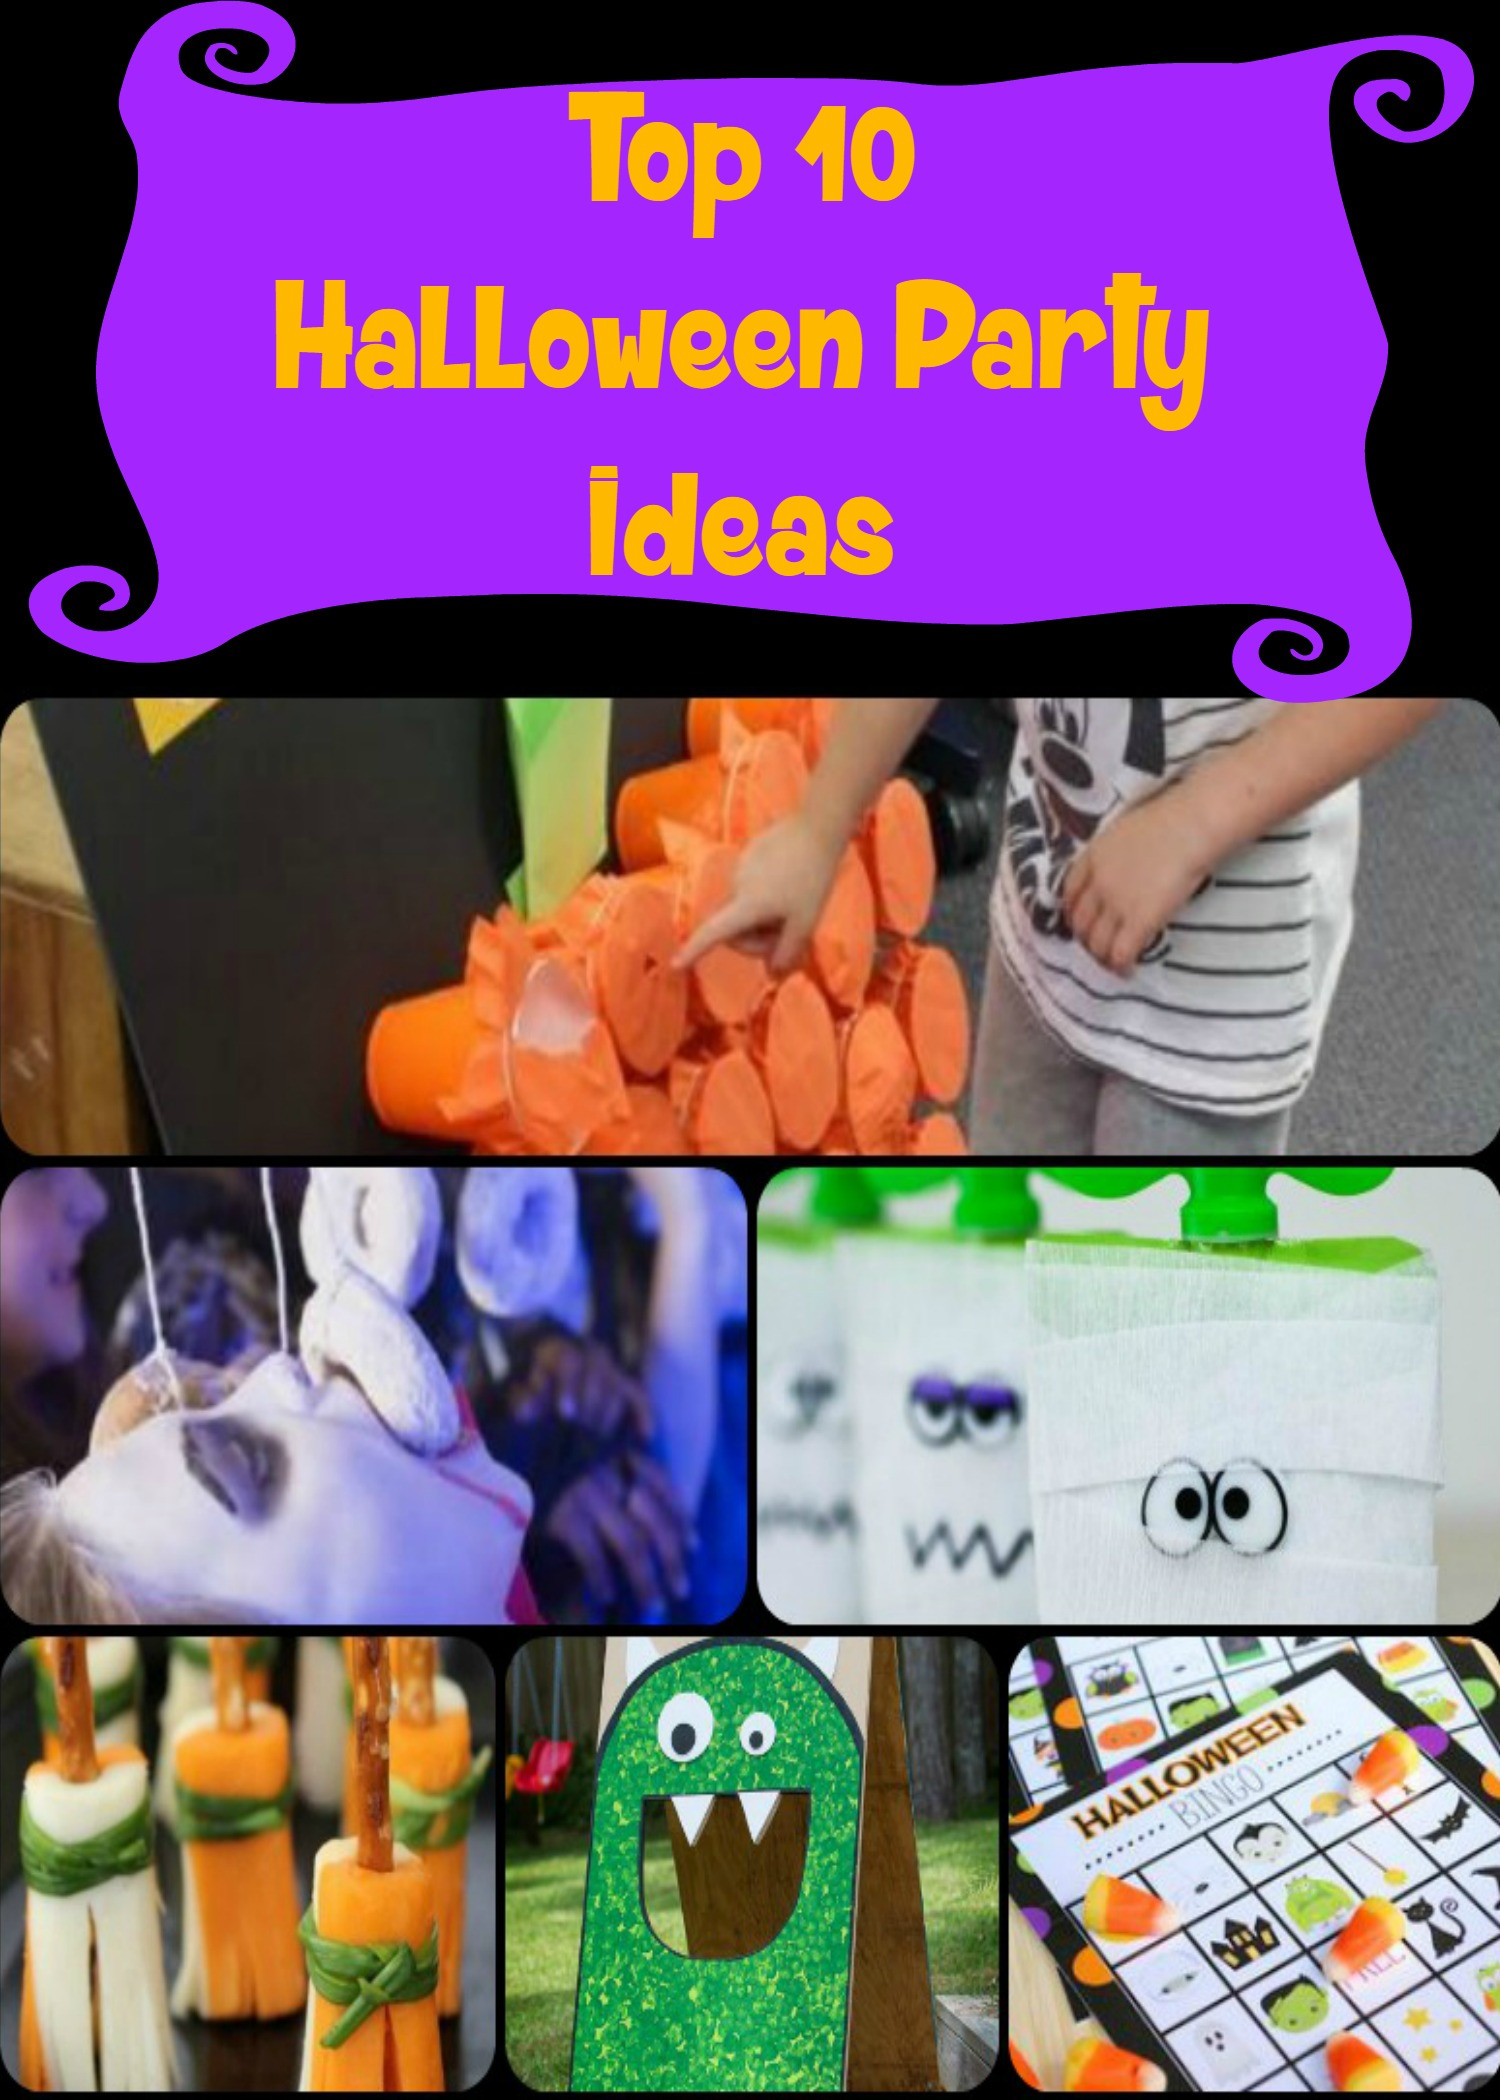 Family Halloween Party Ideas  Top 10 Kids Halloween Party ideas